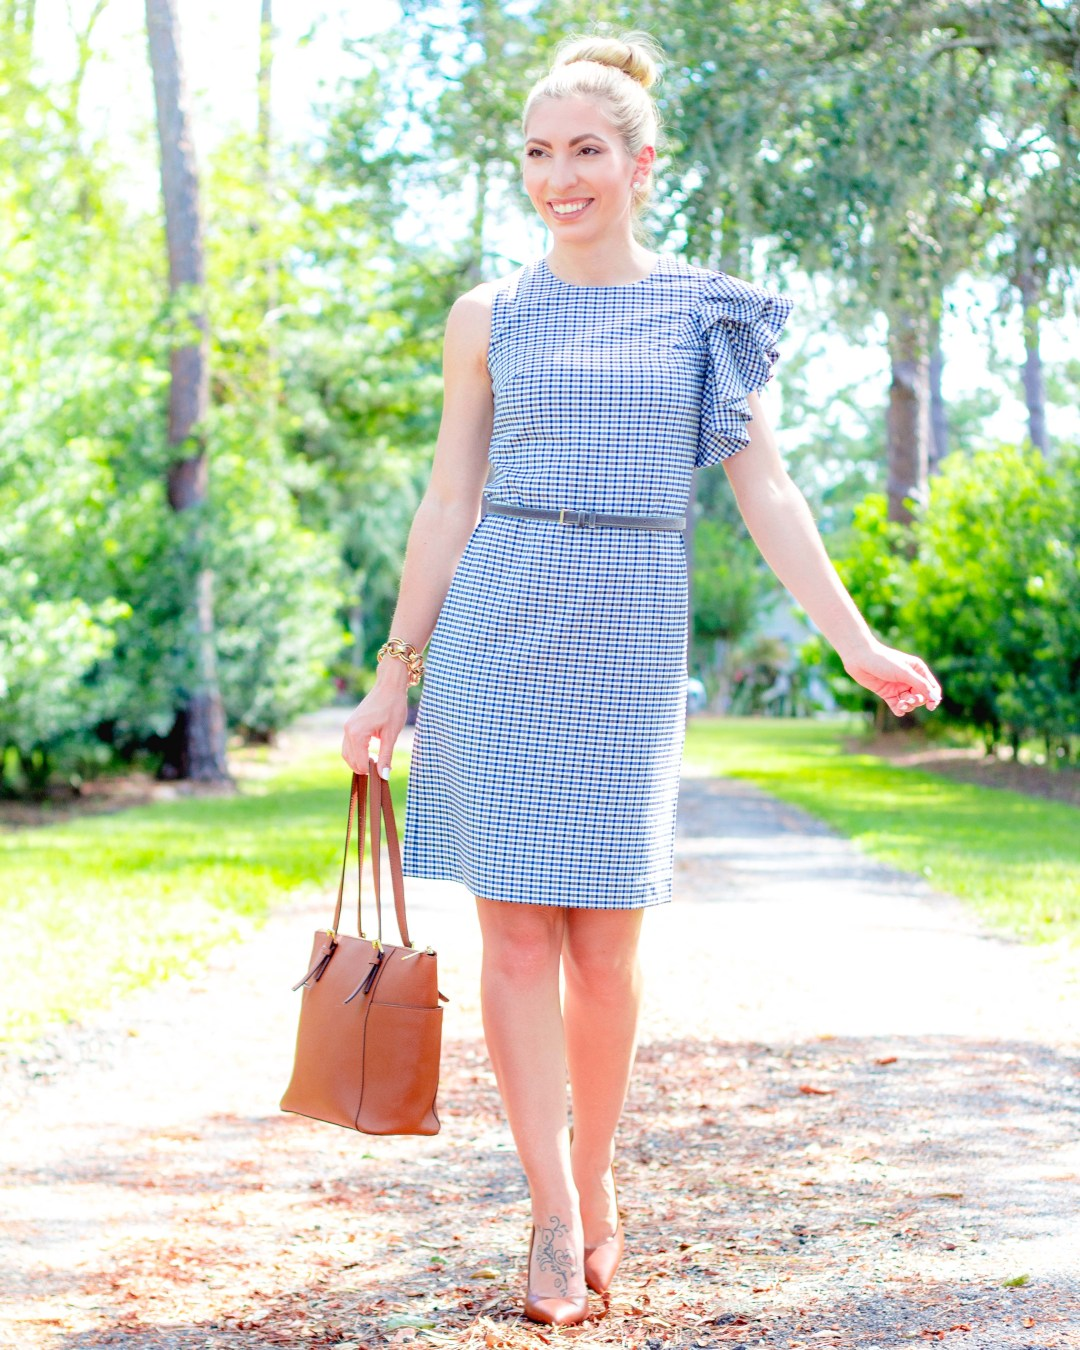 WORKWEAR WEDNESDAY - FALL MUST HAVES BANANA REPUBLIC